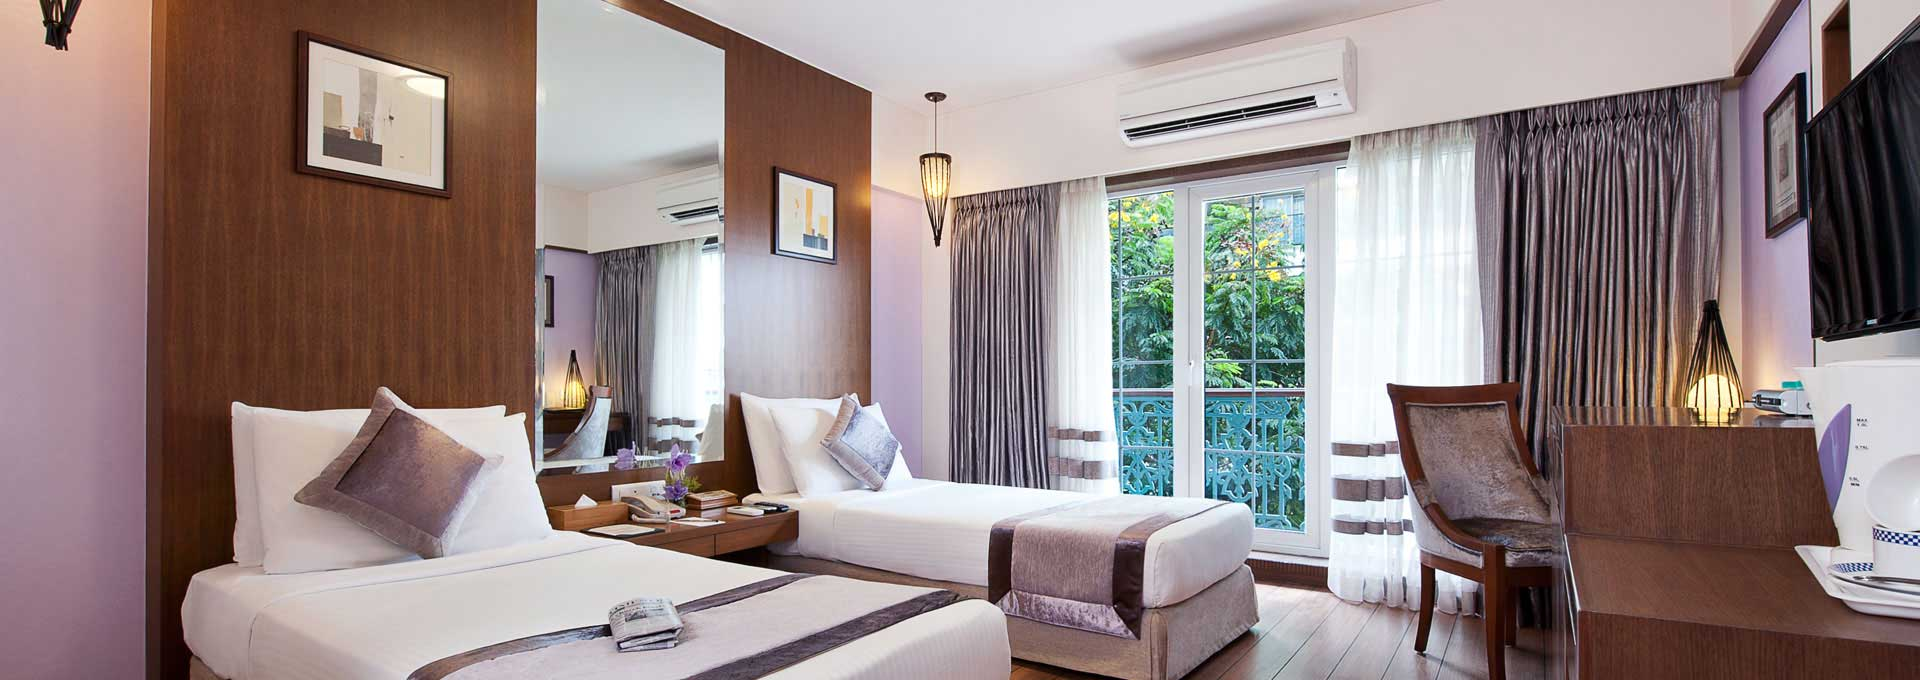 Bed & Breakfast Hotels in Mumbai